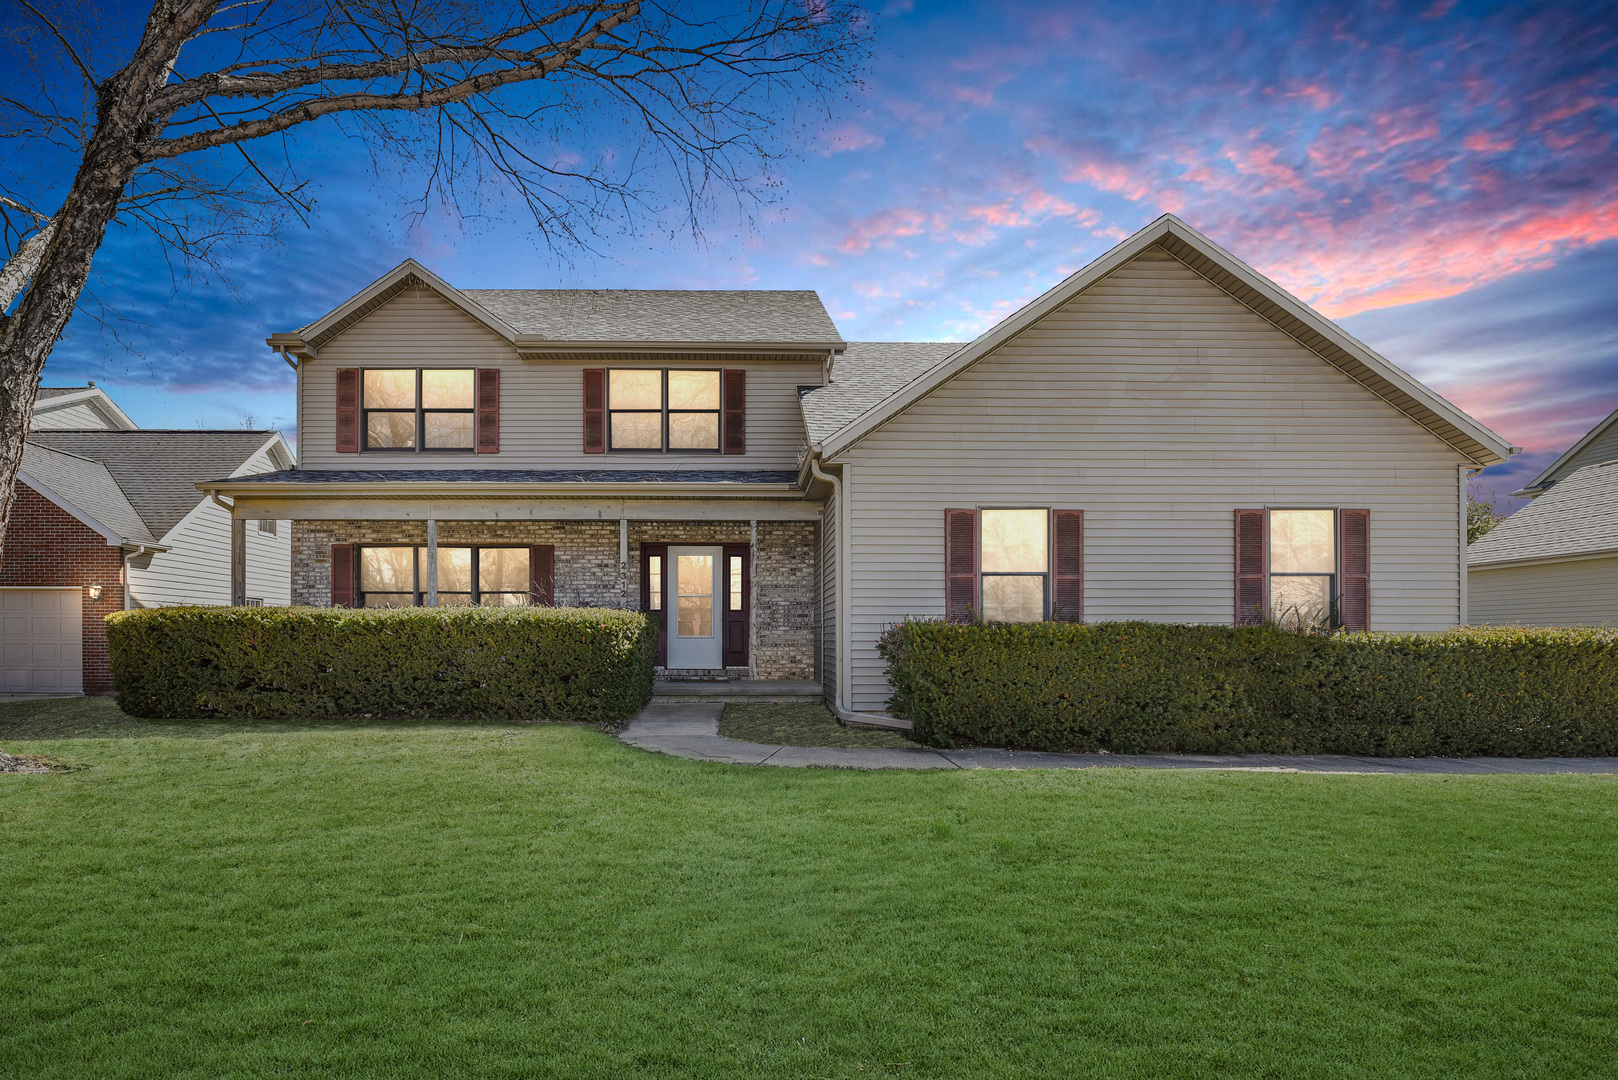 2312 Firethorn Lane, Champaign in Champaign County, IL 61822 Home for Sale